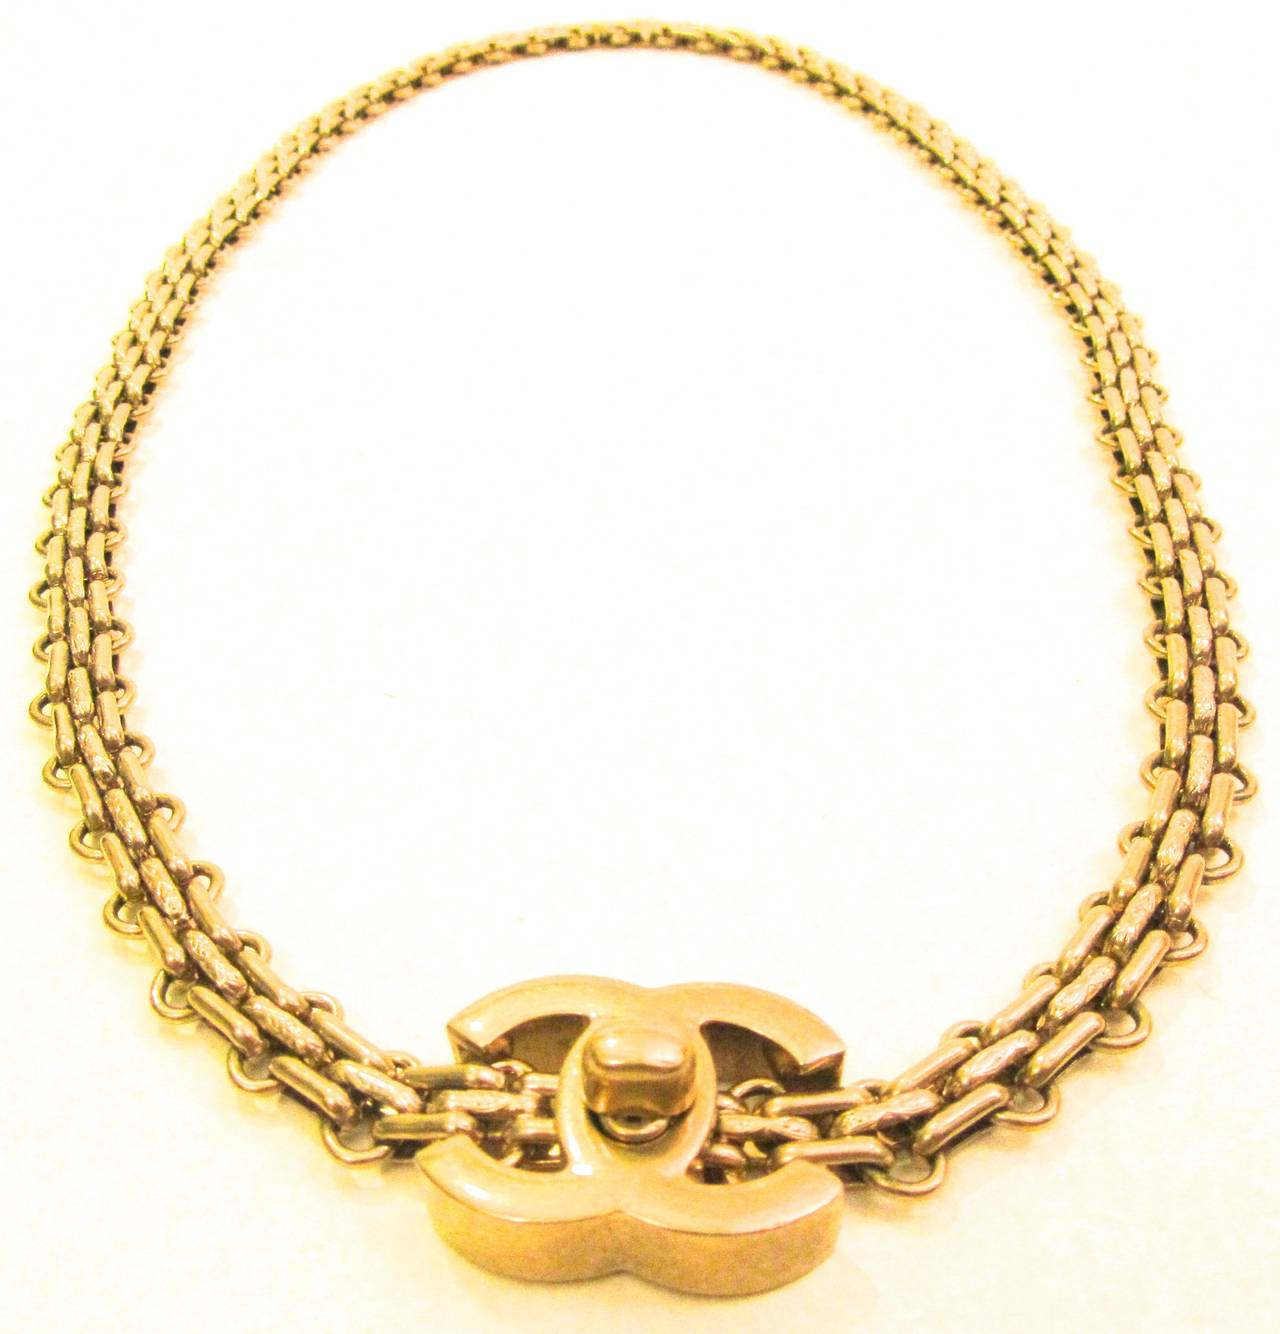 chanel necklace. chanel necklace - gold tone chain 2.55 reissue design cc logo 2